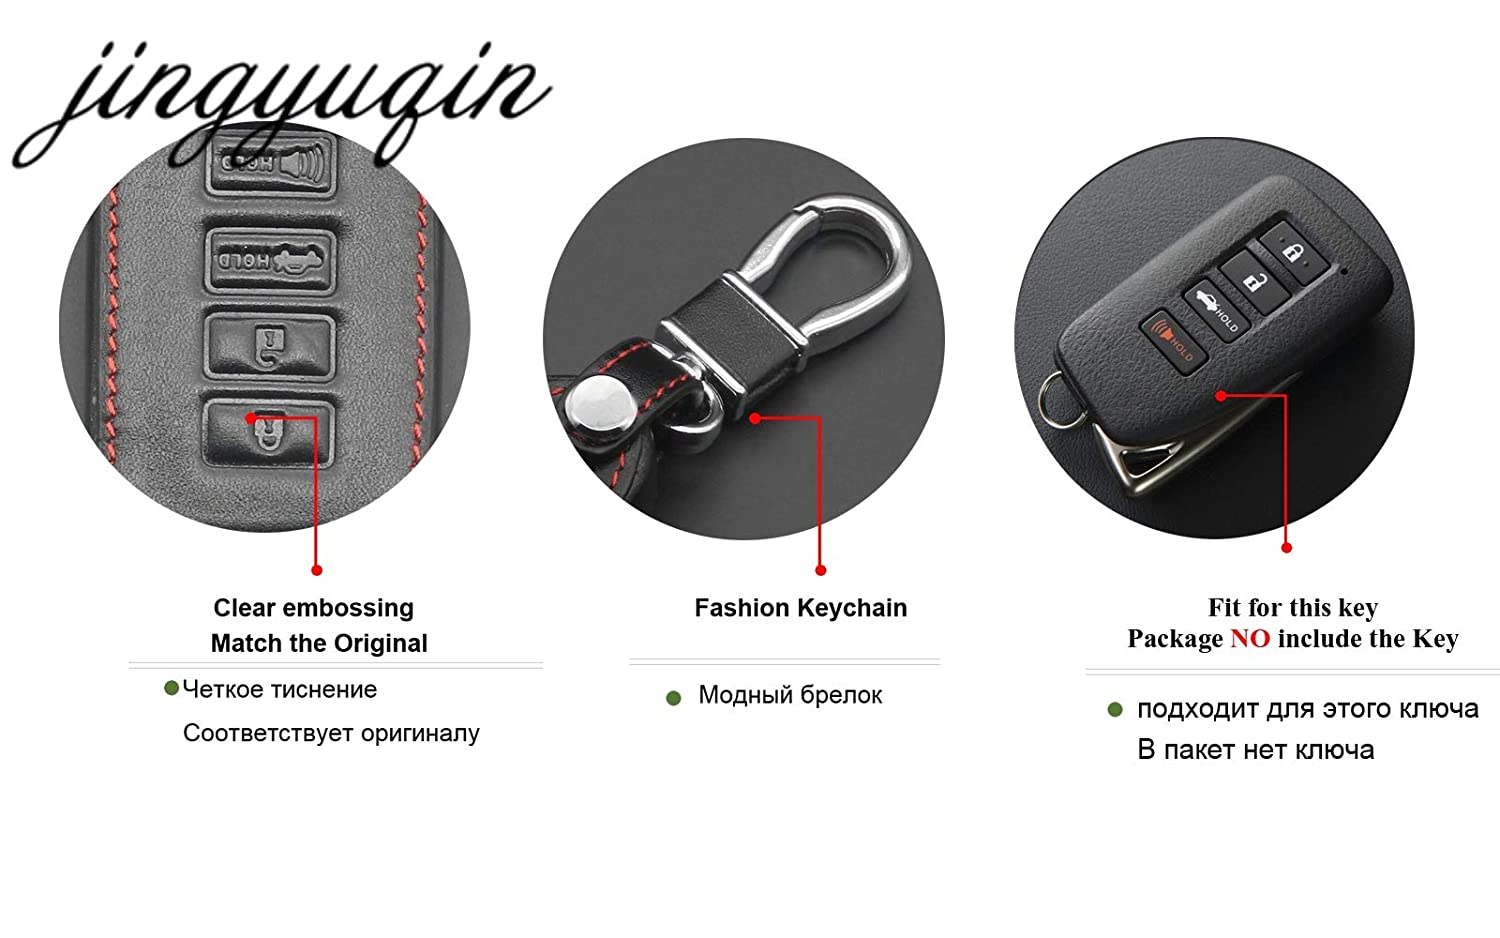 Generic jingyuqin Leather 4 Button Remote Key Case Chain for Lexus NX 200 NX300H RX 350 450H ES 350 ES 300h Car Key Cover Fob Holder